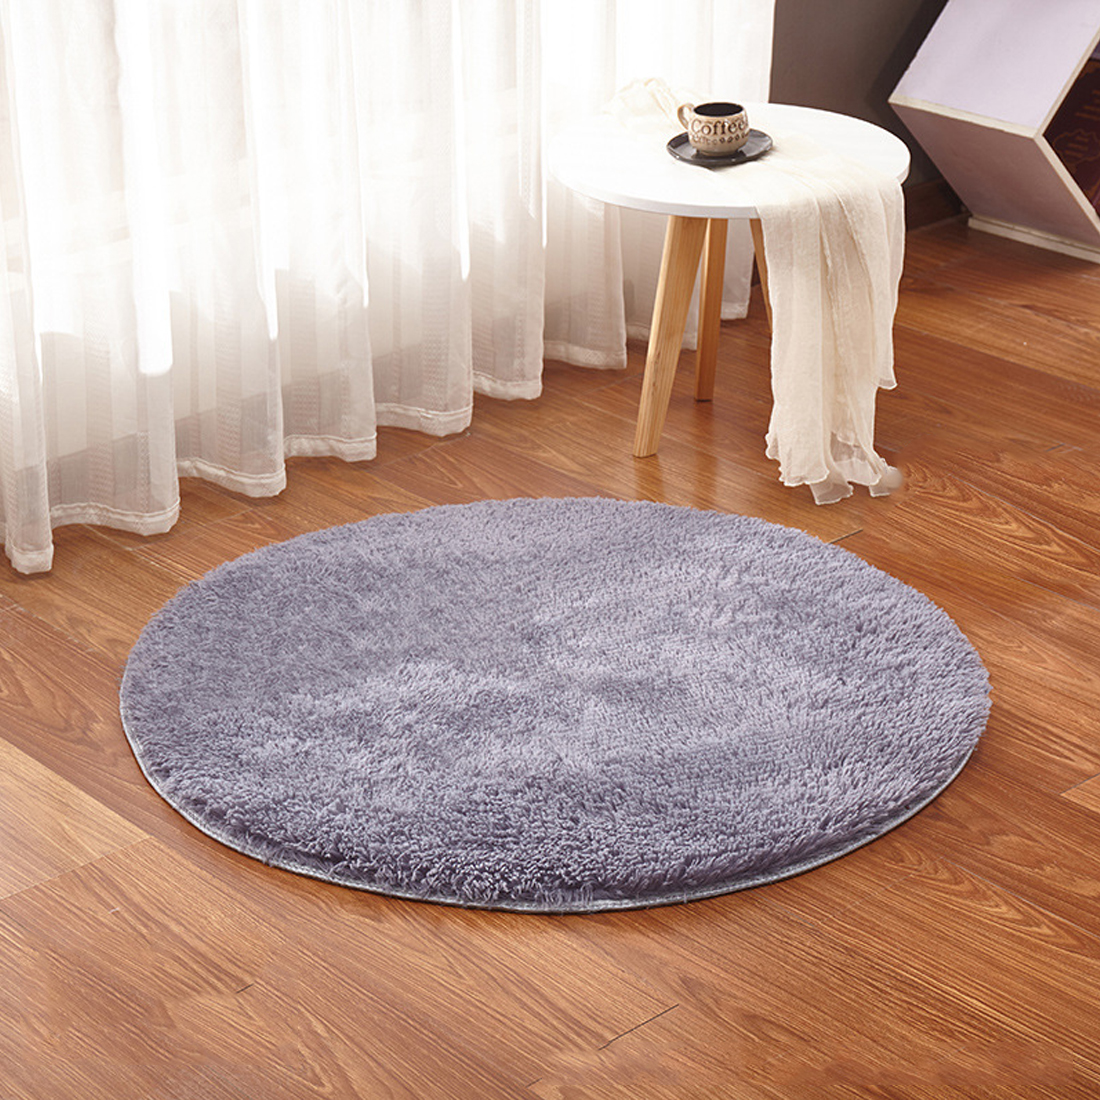 Us 1 21 27 Off Modern Mat Fluffy Round Rug Carpets For Living Room Decor Faux Fur Carpet Kids Room Long Plush Rugs For Bedroom Shaggy Area Rug In